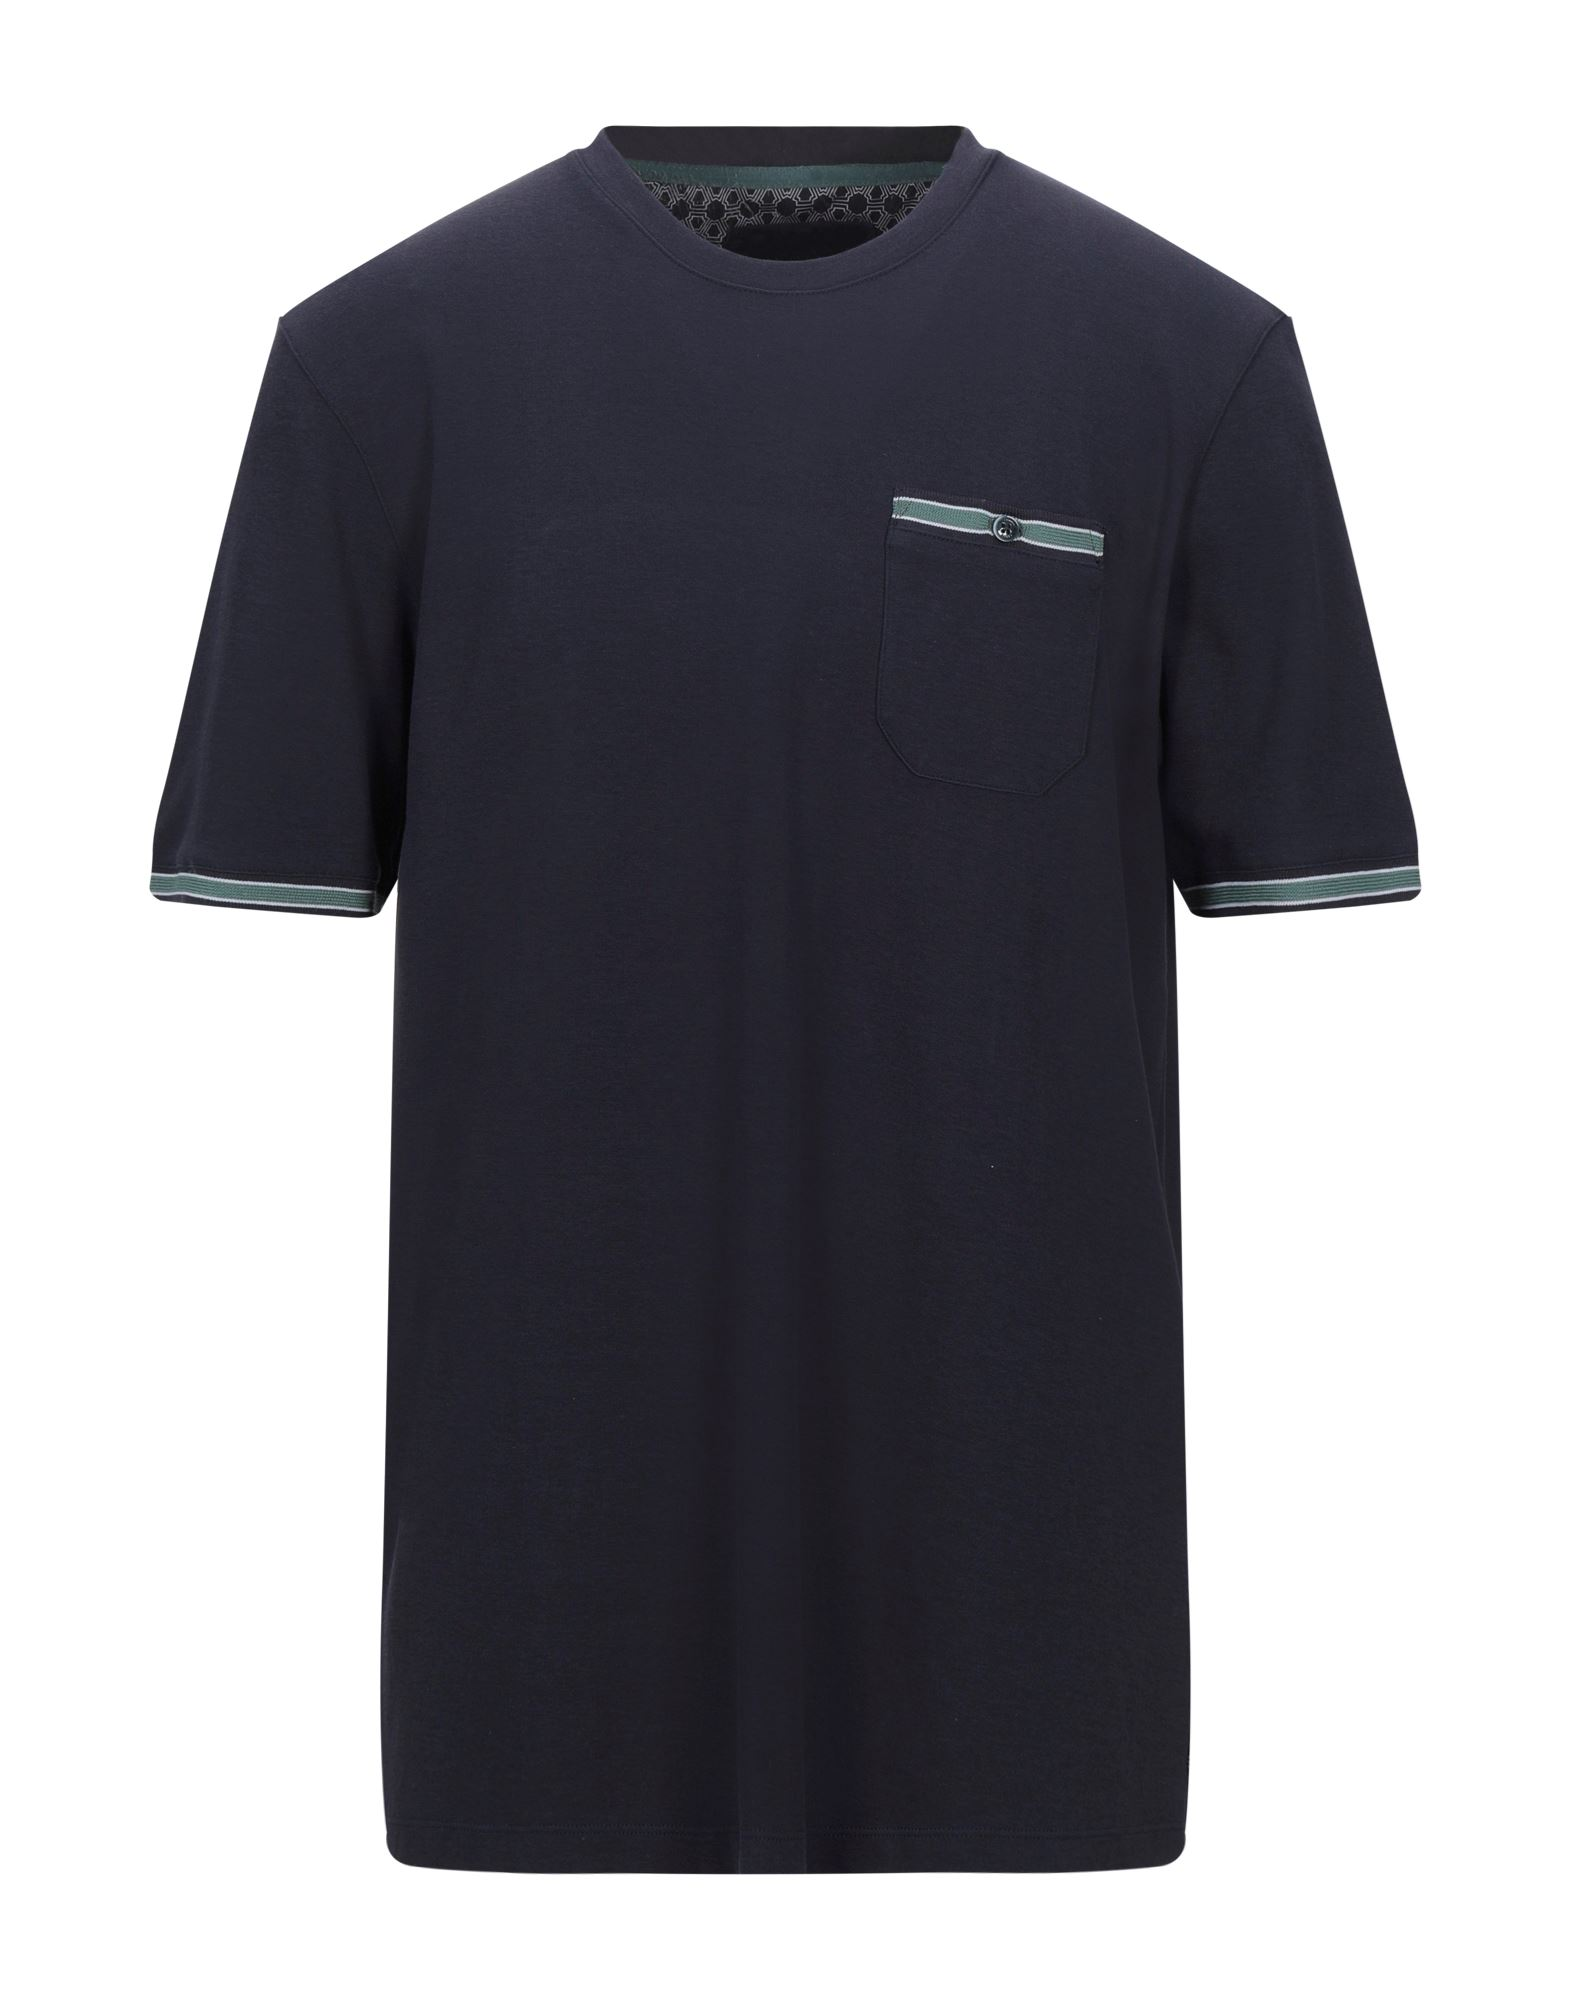 TED BAKER T-shirts - Item 12524386